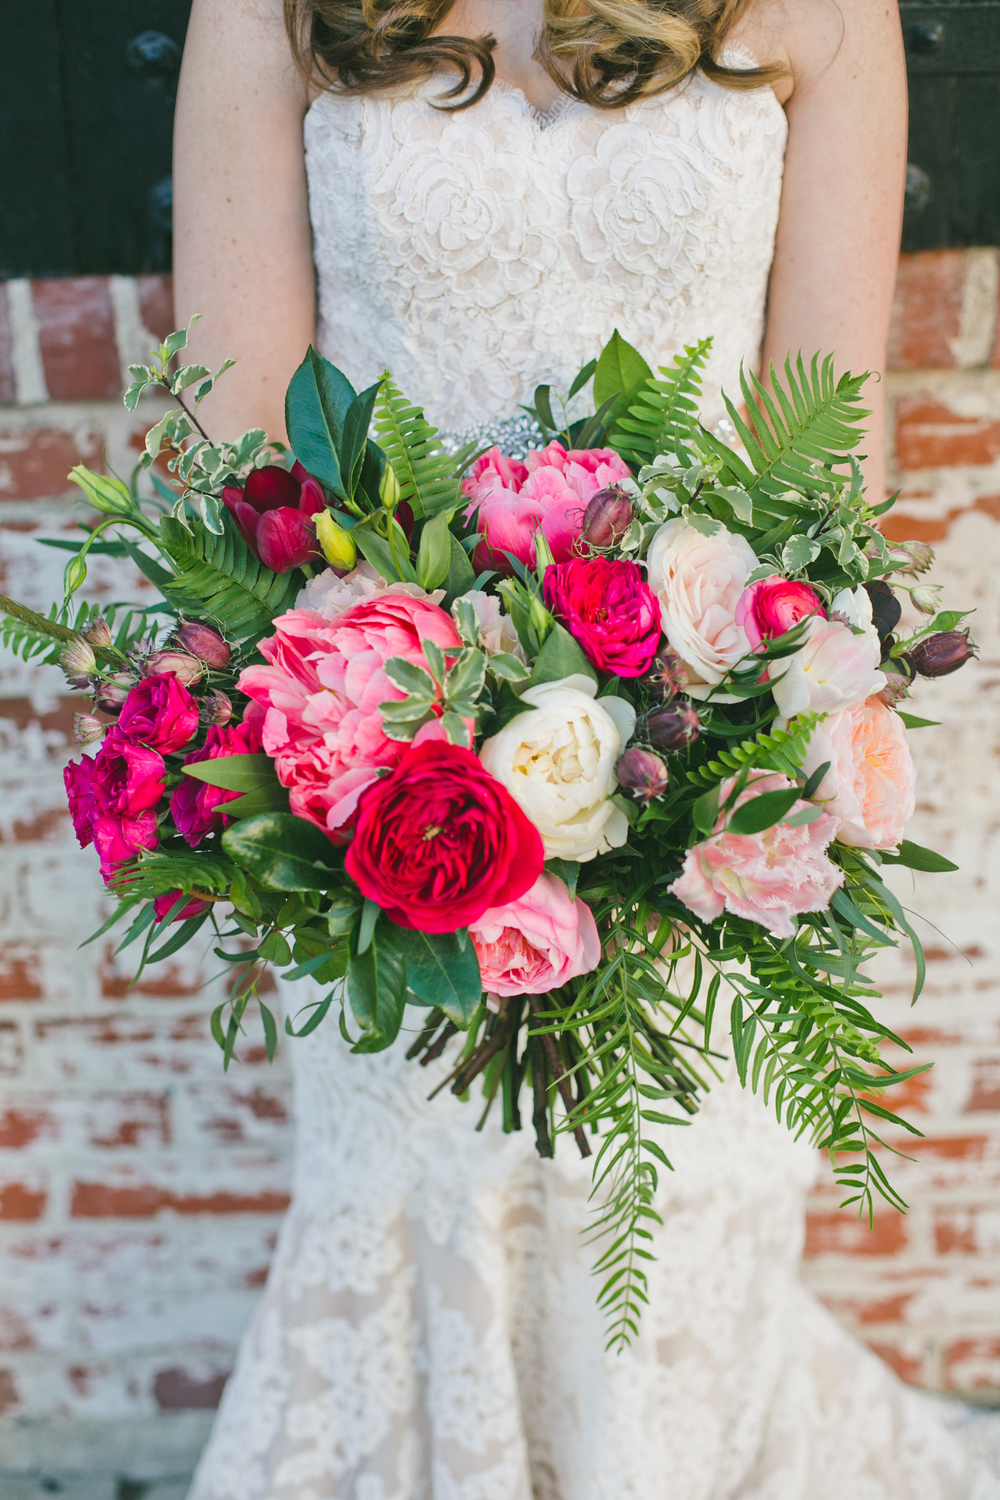 020 bride bouquet.JPG